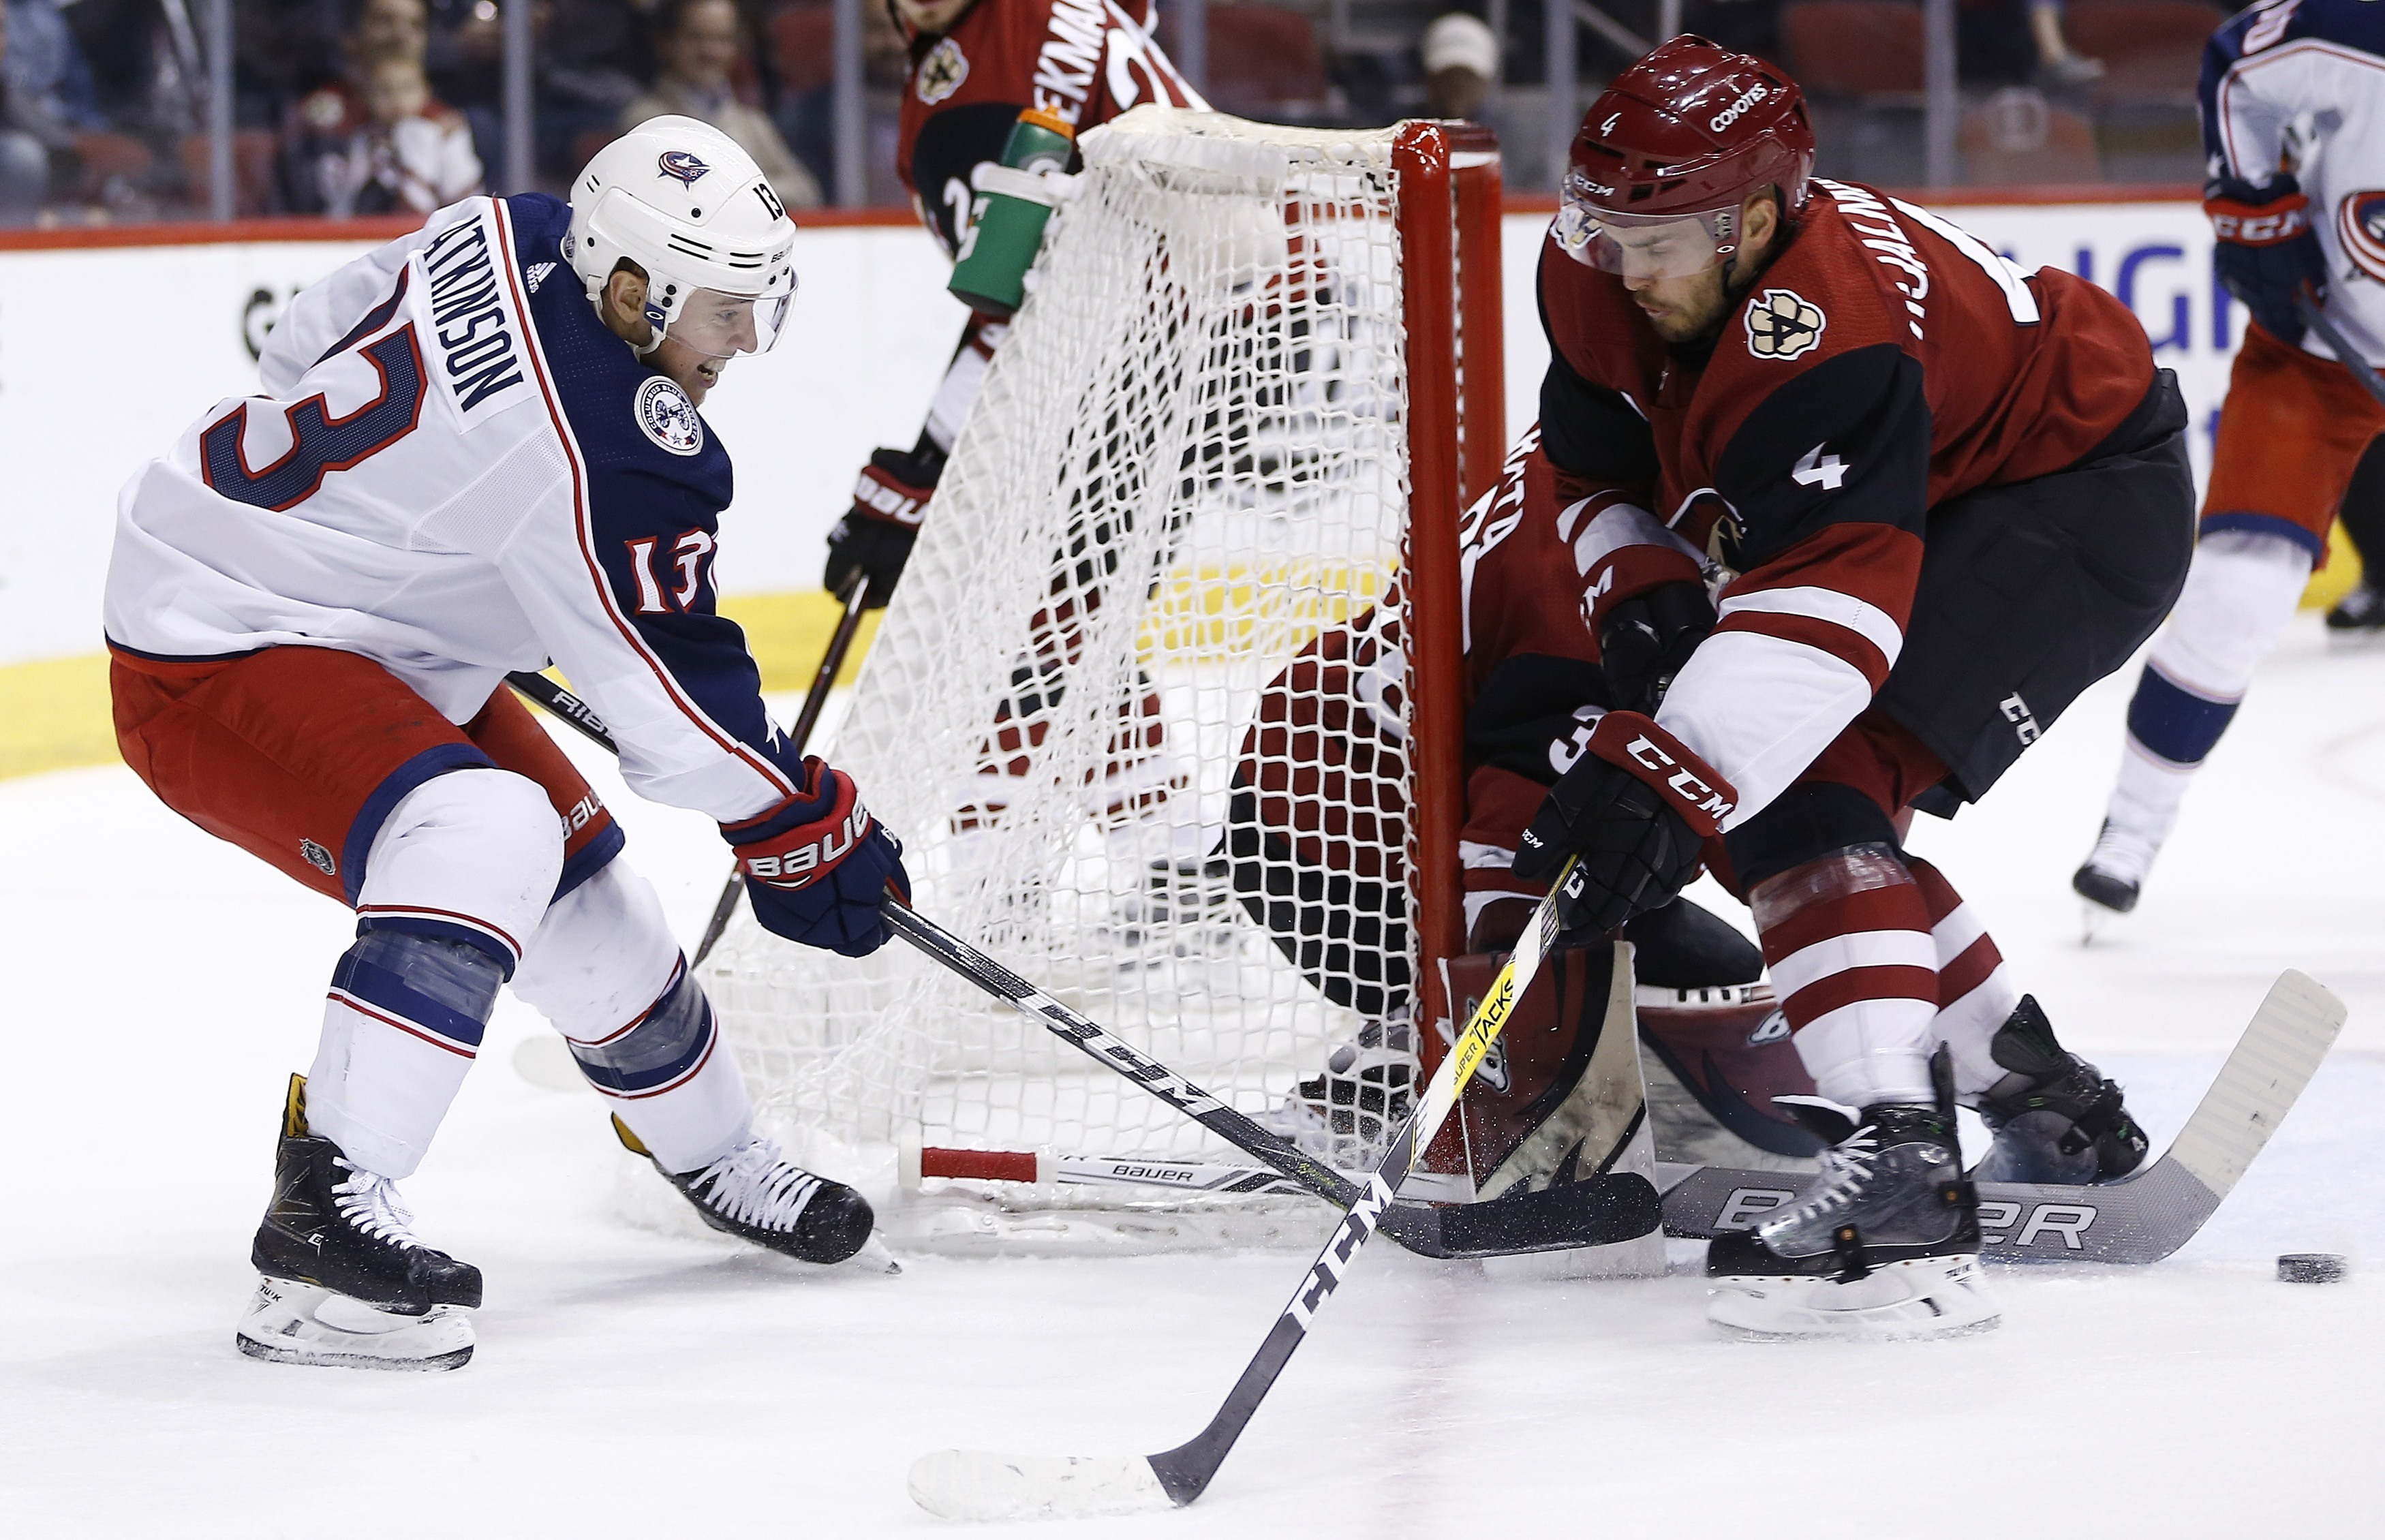 Columbus Blue Jackets right wing Cam Atkinson (13) passes the puck past Arizona Coyotes defenseman Niklas Hjalmarsson (4) during the first period of an NHL hockey game, Thursday, Jan. 25, 2018, in Glendale, Ariz. (AP Photo/Ross D. Franklin)